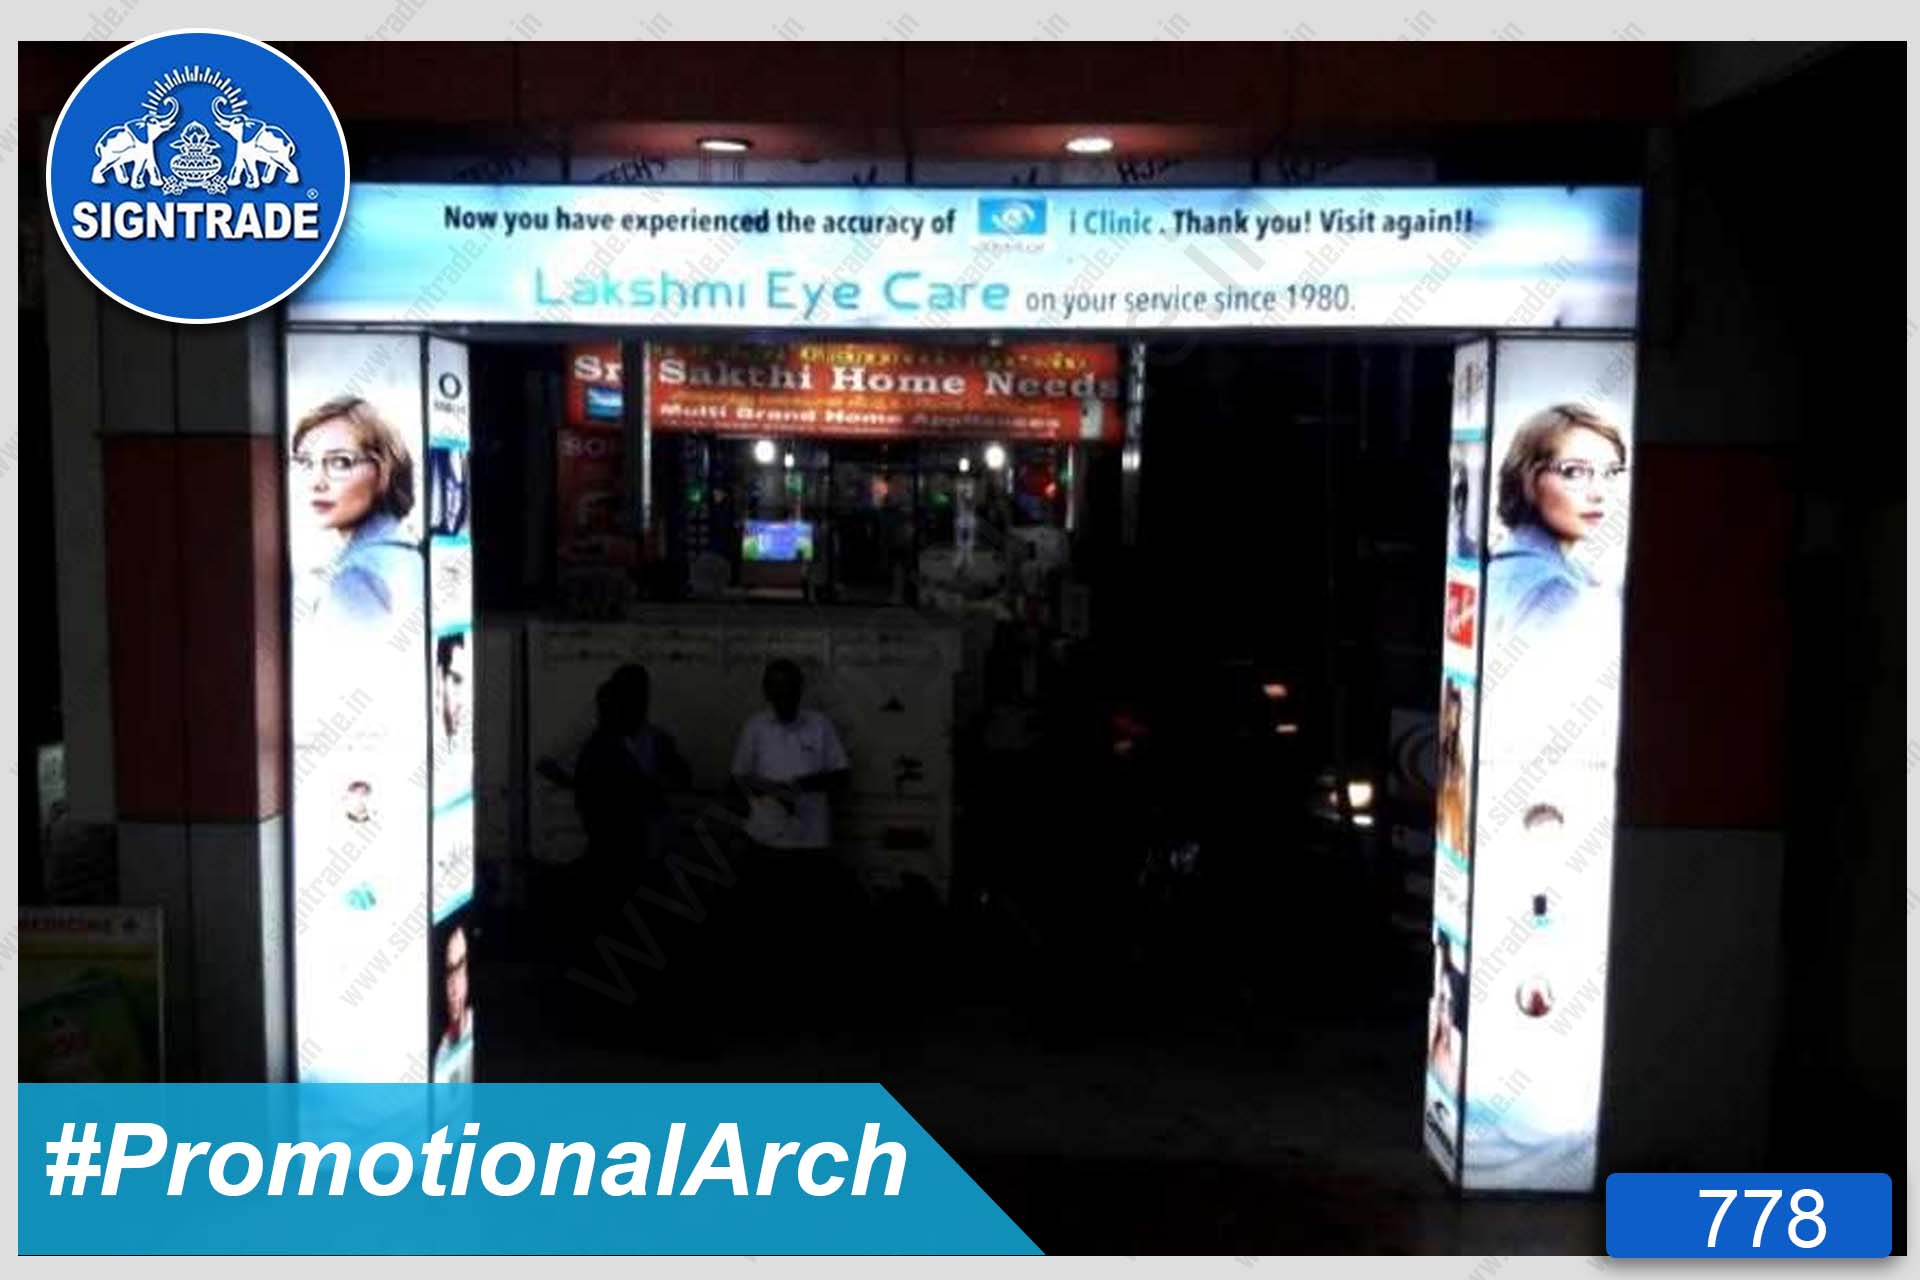 Lakshmi Eye Care - Promotional Arch